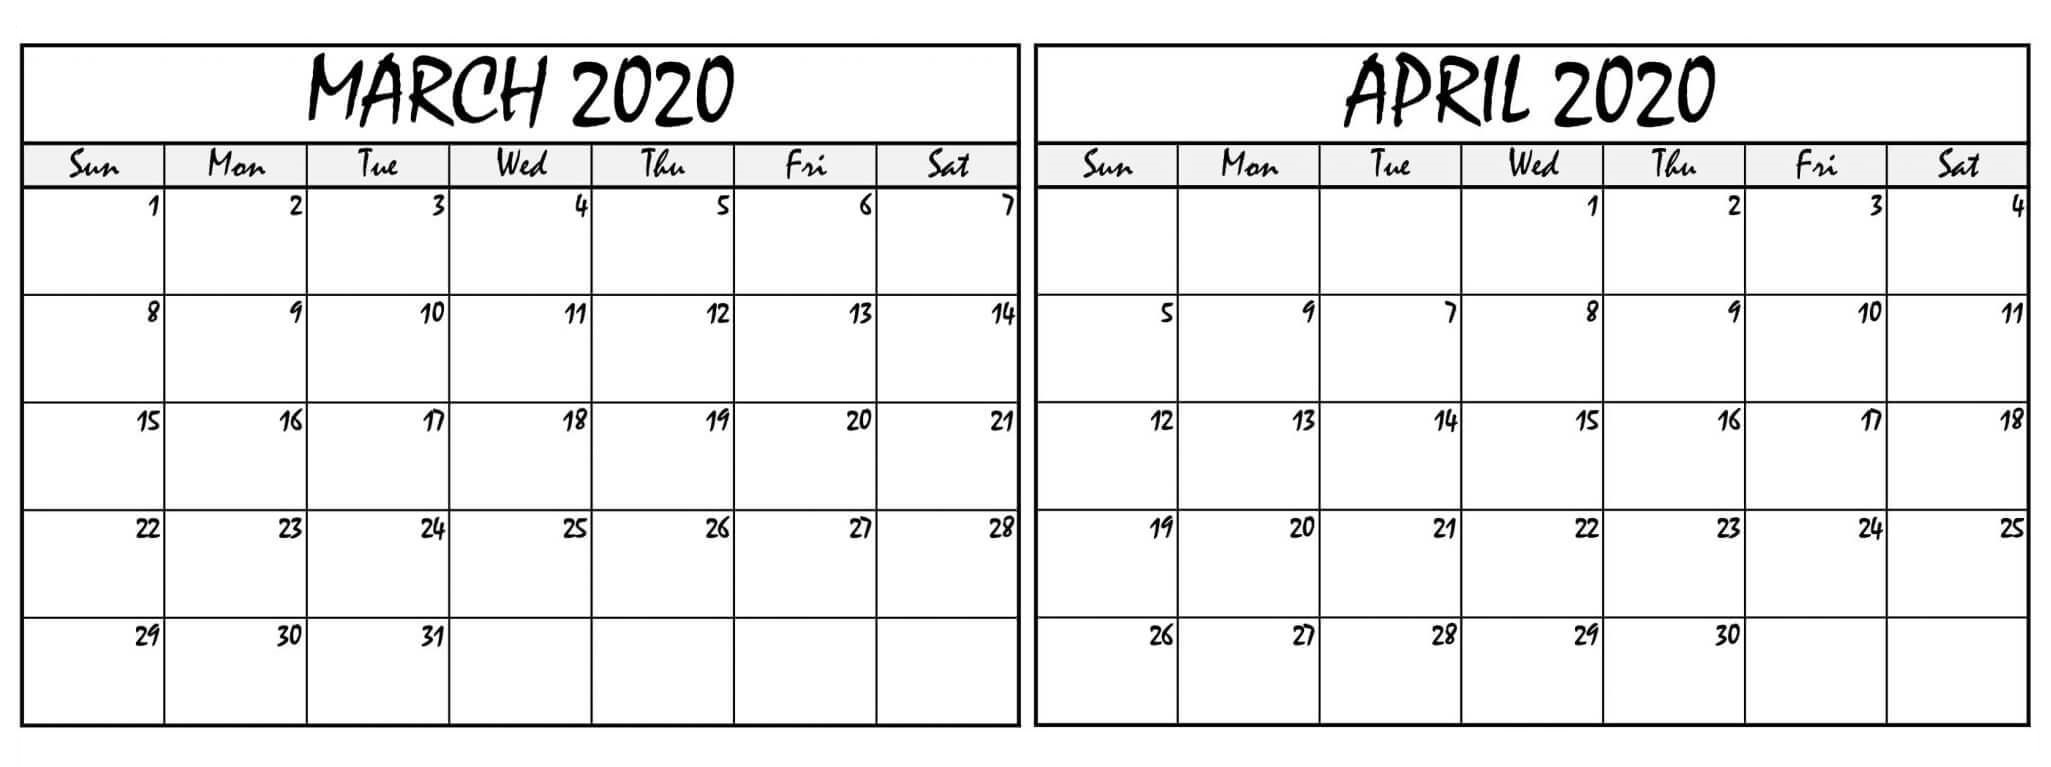 March April 2020 Calendar Pdf With Notes - 2019 Calendars